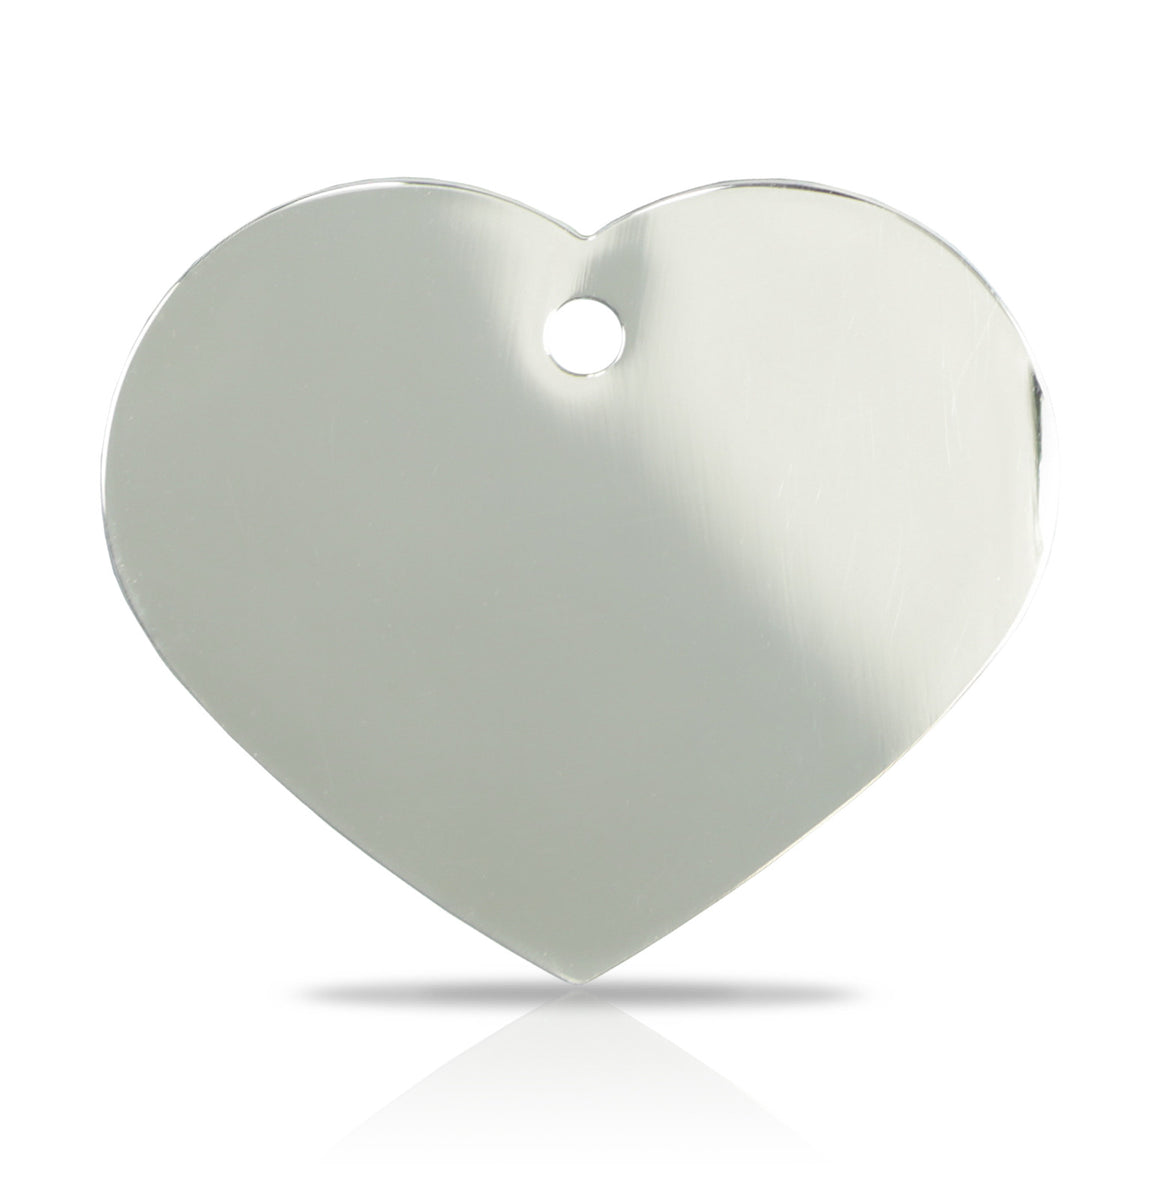 TaggIT Engraving Prestige Large Heart Silver iMarc Pet Tag